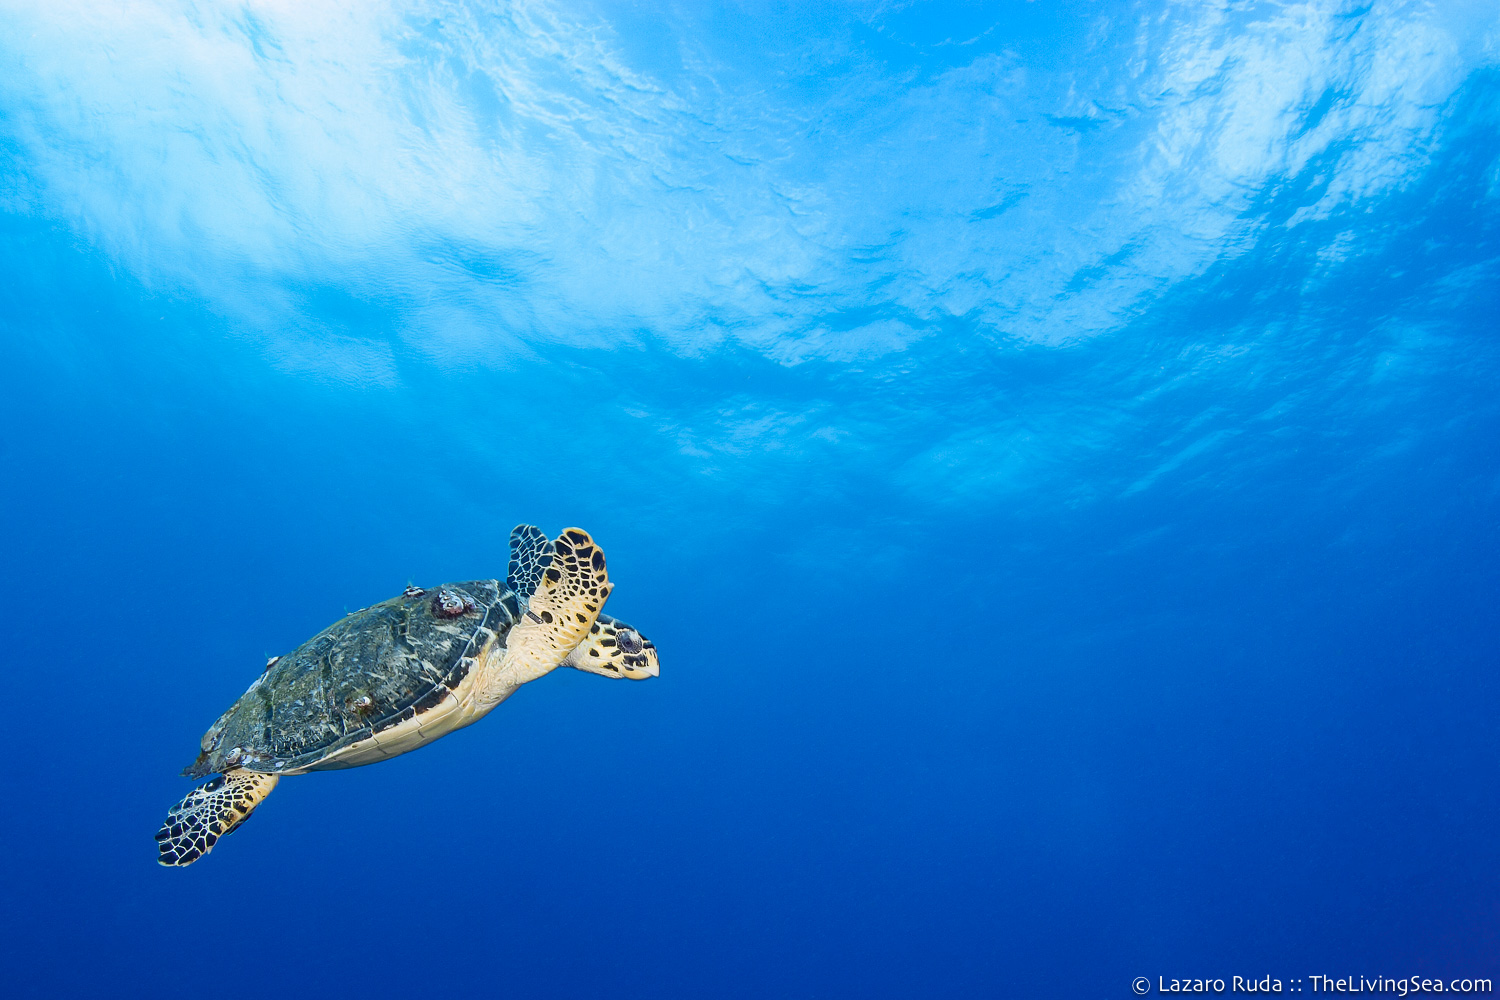 25 - 36 inches, Cheloniidae, Marine Life, Reptiles, Reptilia, Sea Turtles: Testudines, adolescent, blue, body - full, copyrighted, disk / oval, hawksbill sea turtle: hawksbill turtle: hawksbill: Eretmochelys , horizontal, landscape, marine, ocean, reptile, side profile, swimming, tan, underwater, underwater photo, wide angle